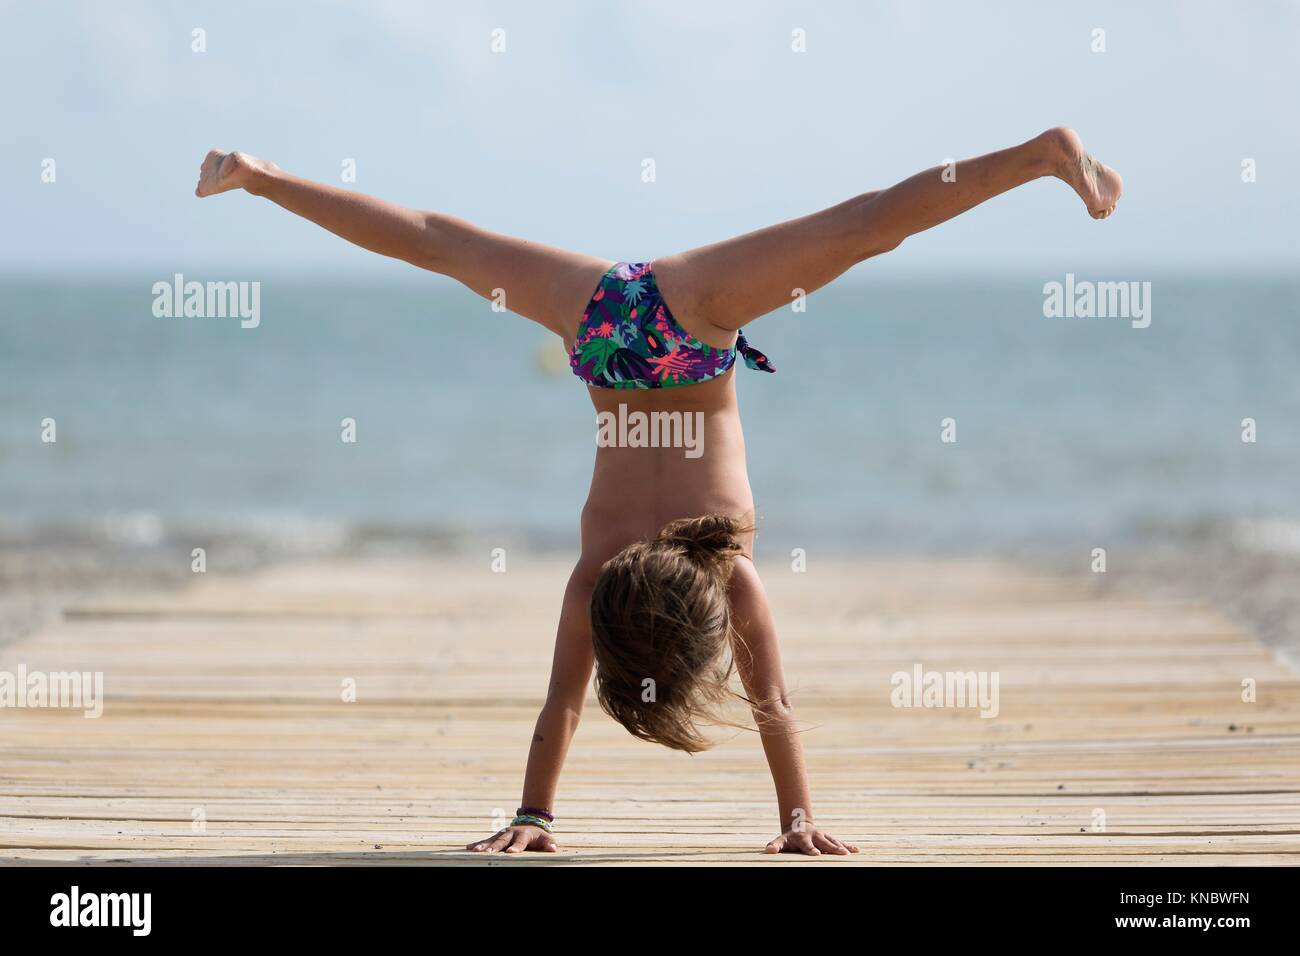 naked preteen girls 9 - 11 y.o. small little naked Getty Images